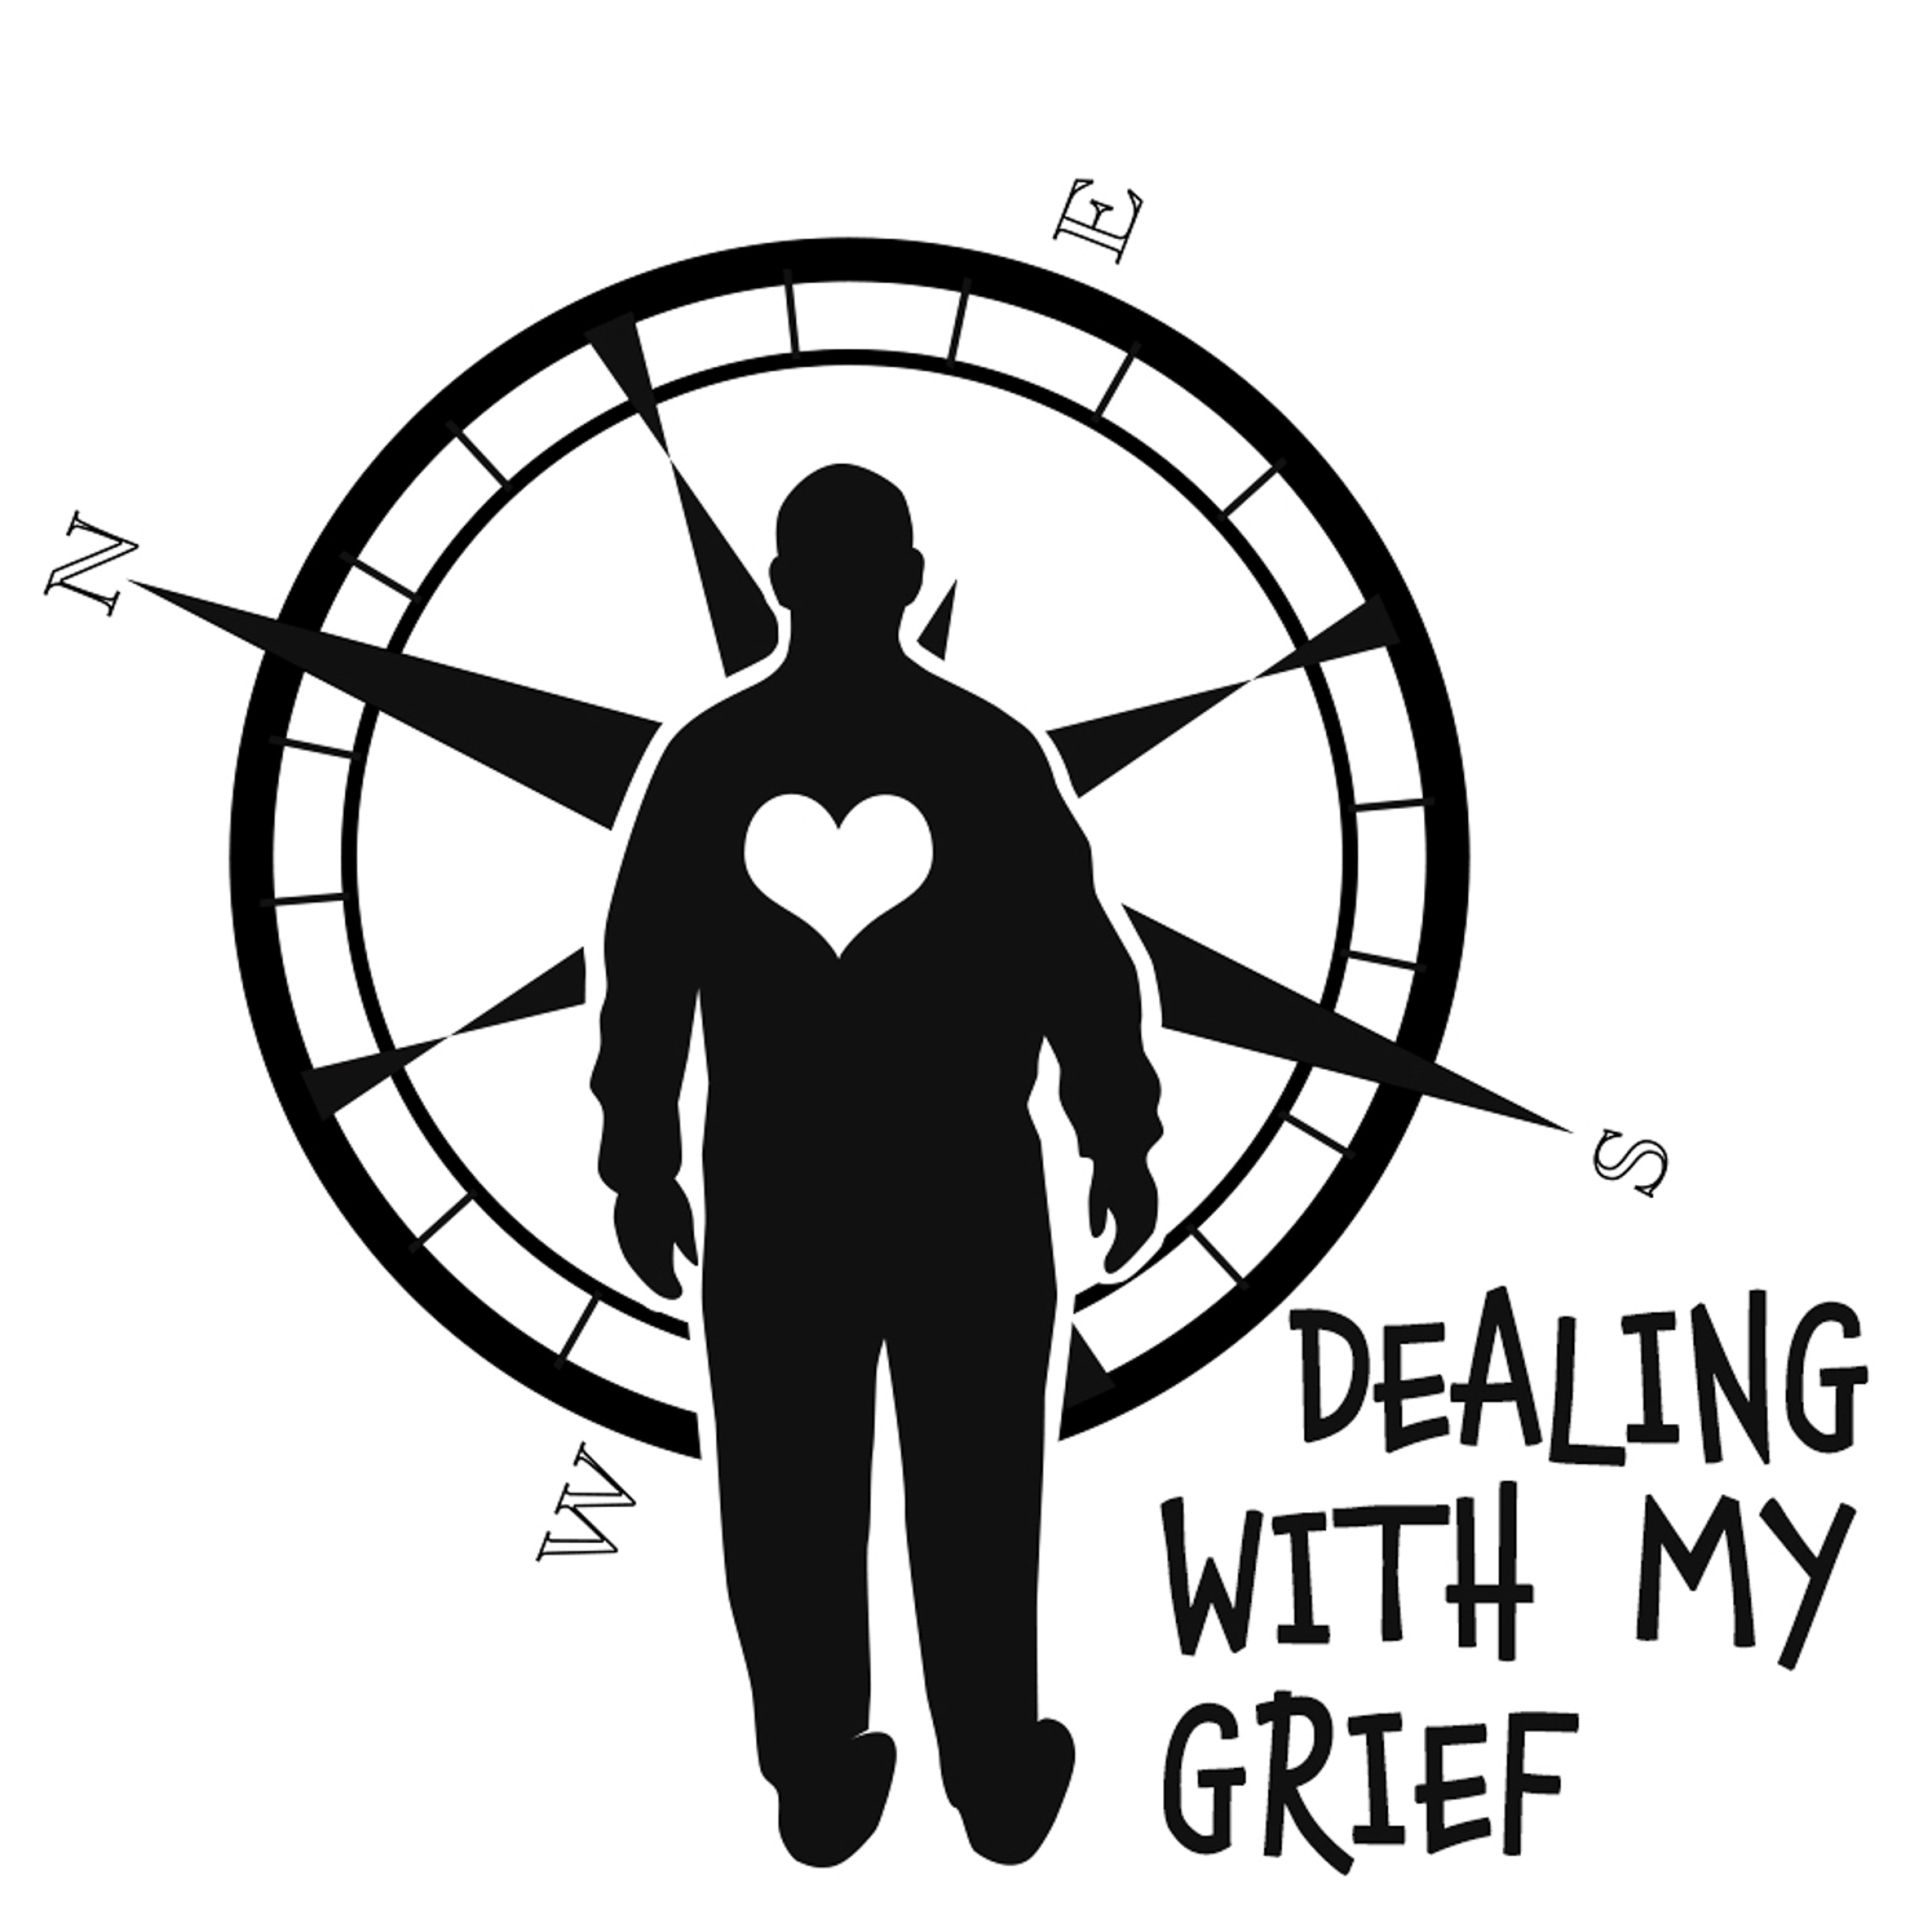 Dealing With My Grief